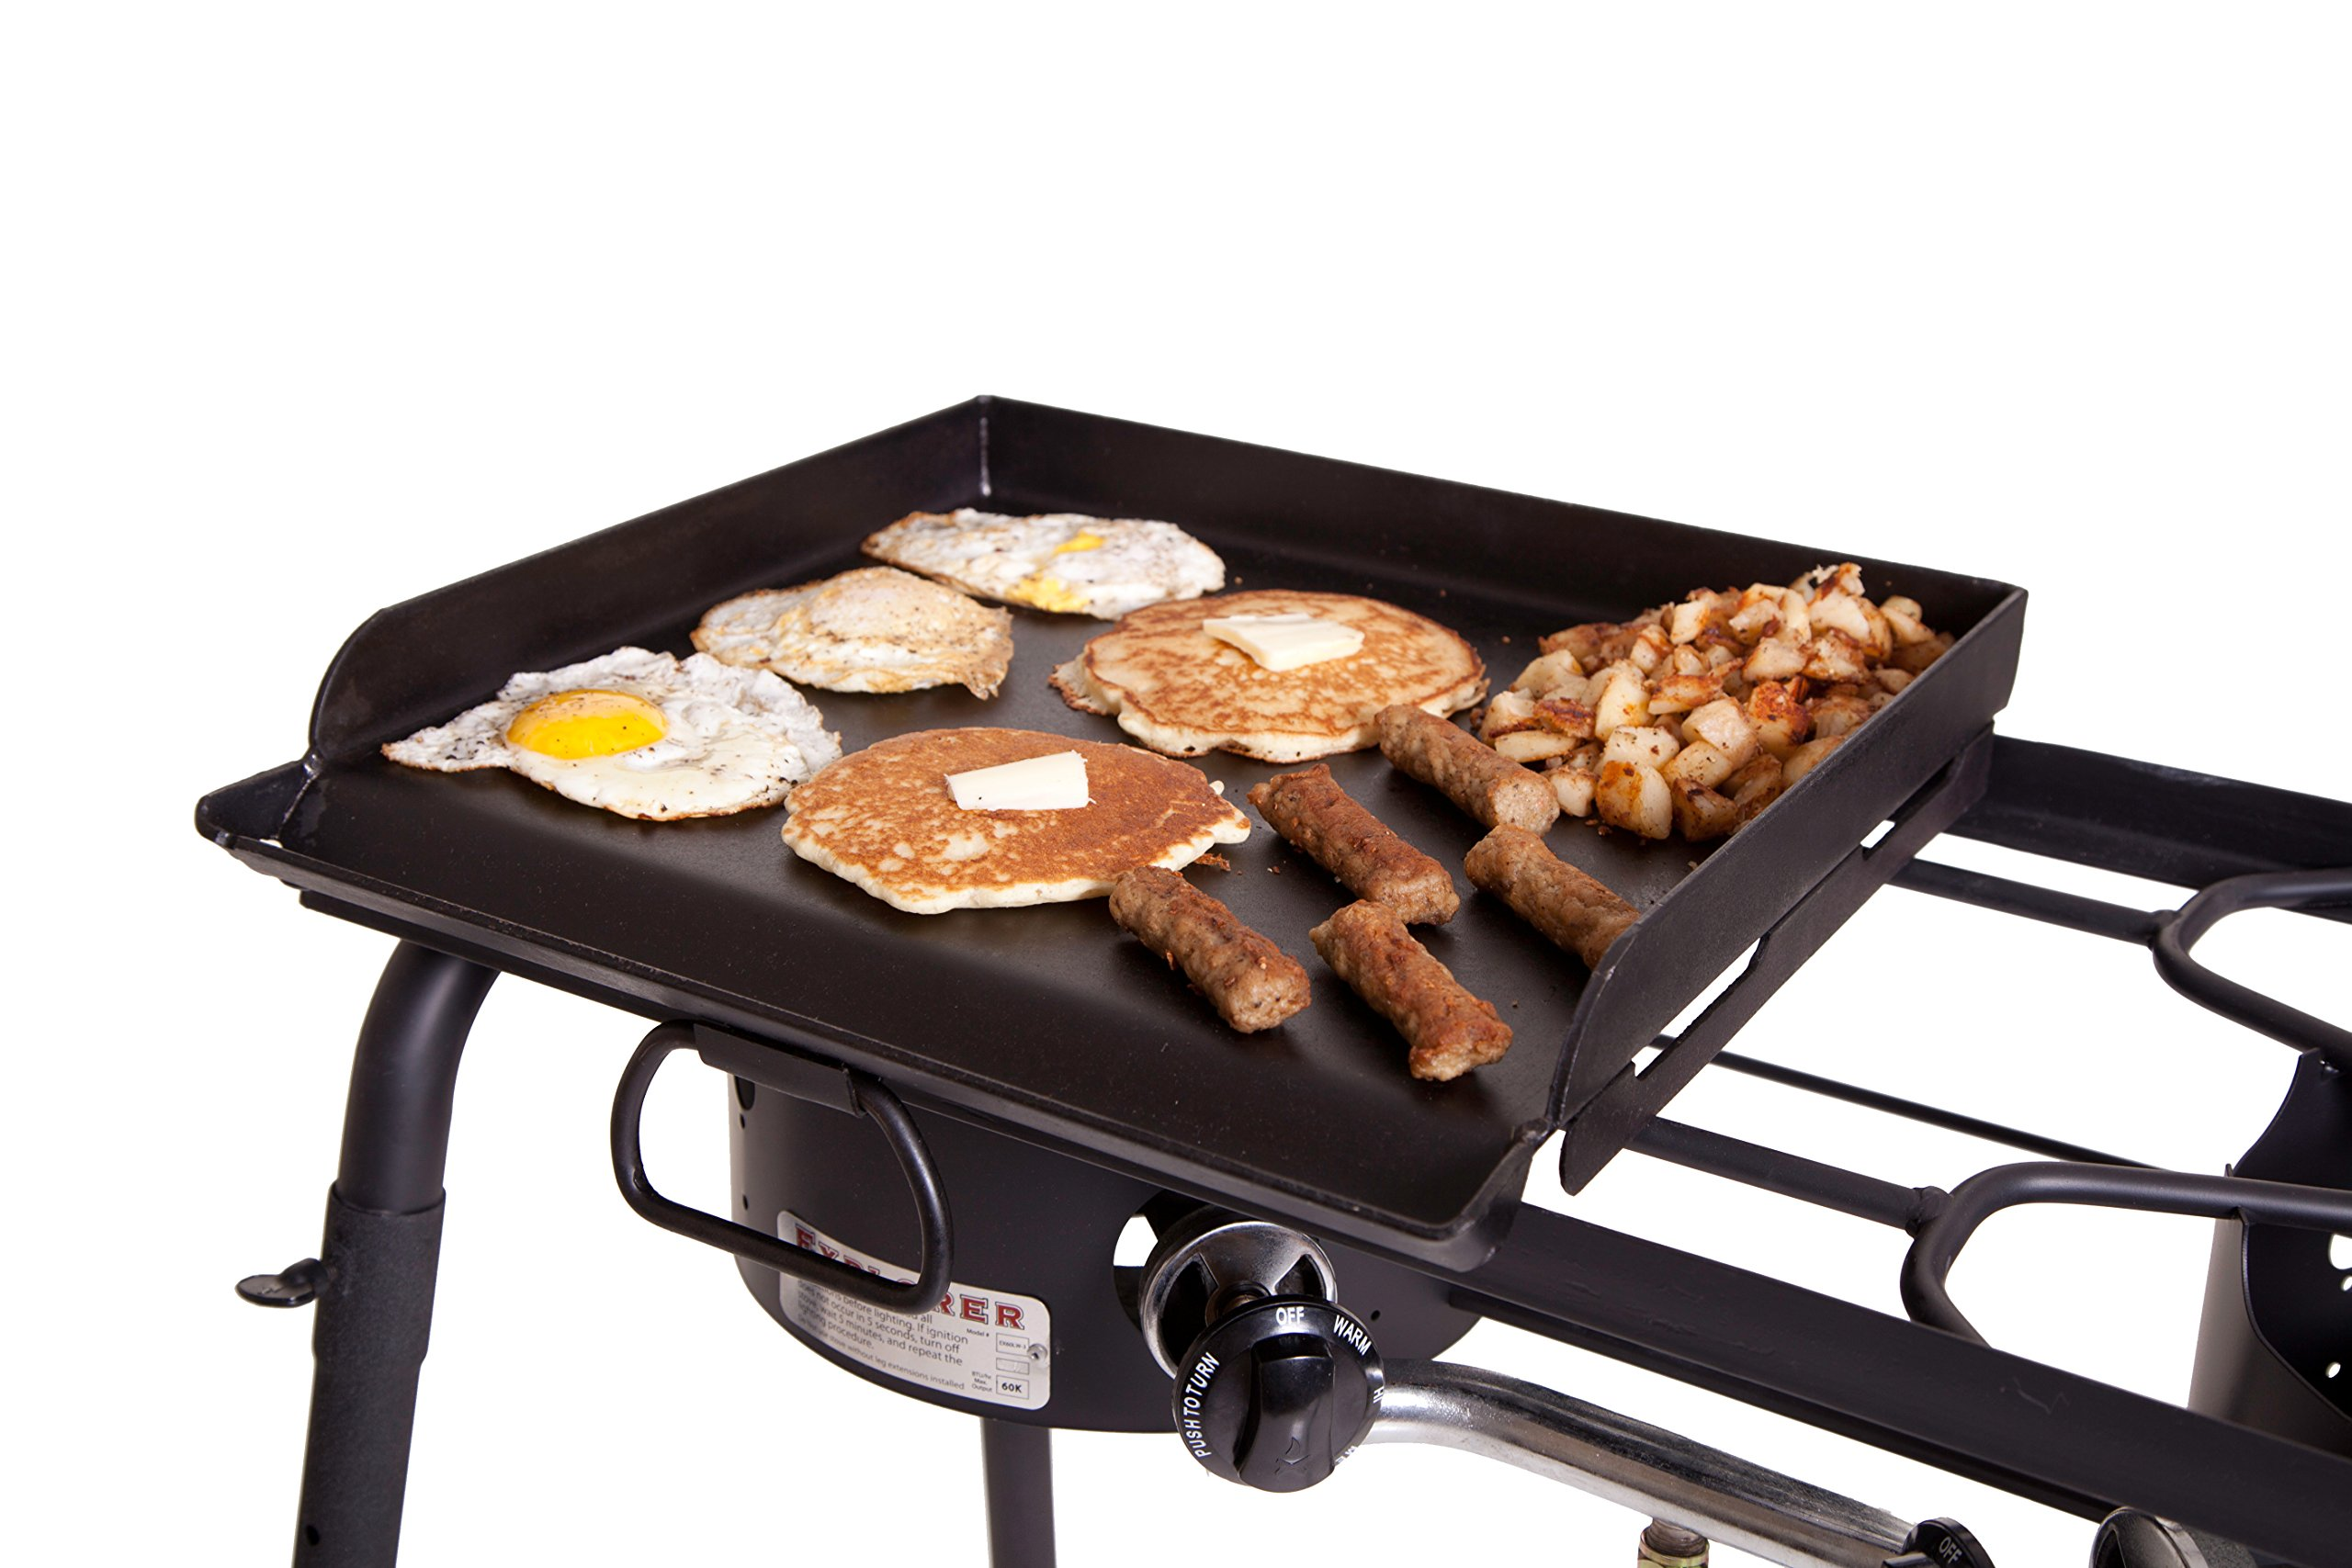 Camp Chef SG30 Professional Steel Fry Flat Top Griddle, Pre-Seasoned - Fits All Blue Flame Stoves (single burner) by Camp Chef